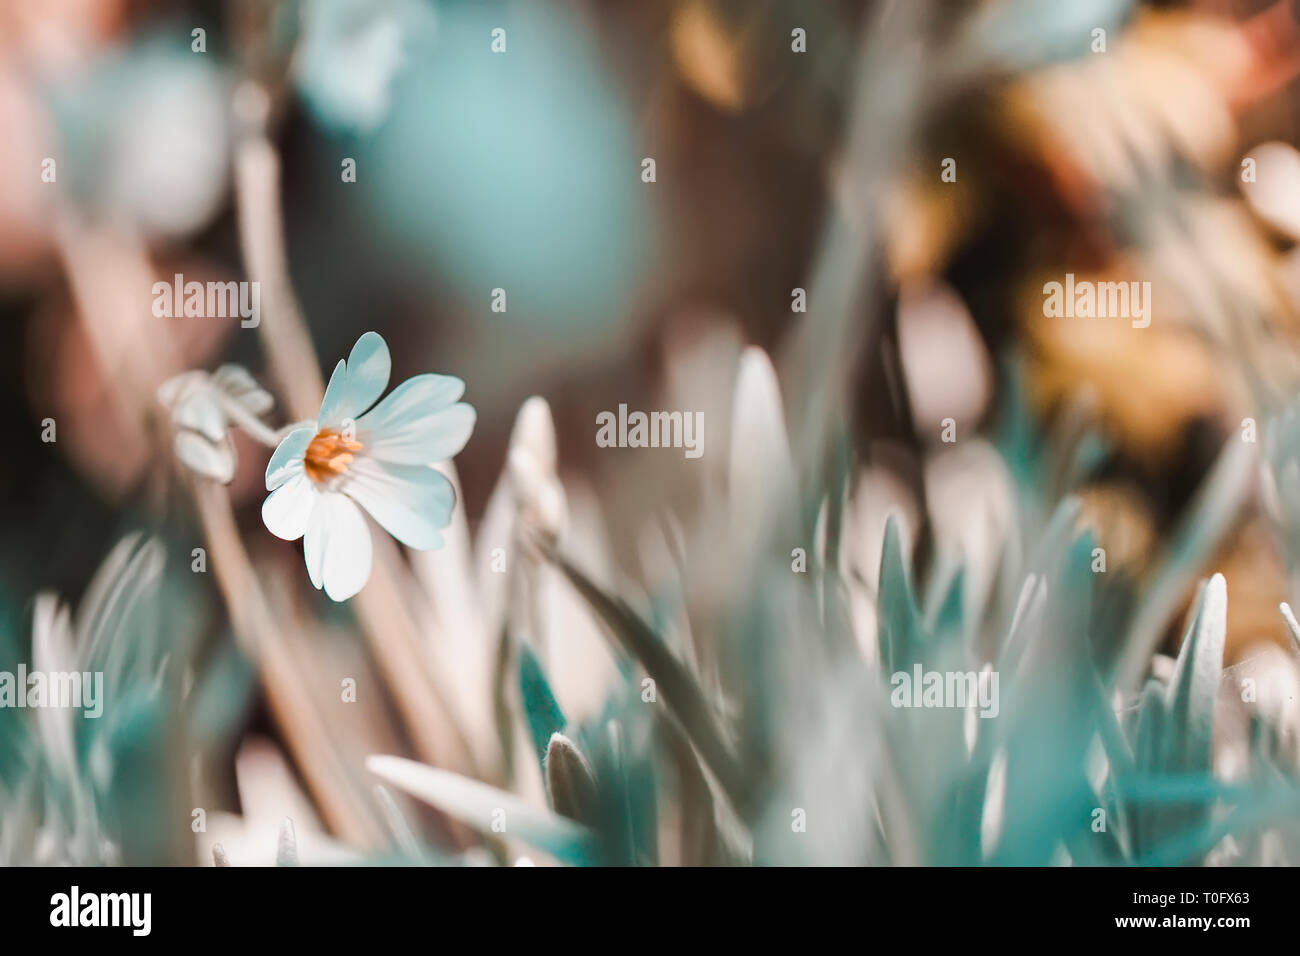 Vintage spring floral blurred background, natural first flowers primroses in grass - Stock Image